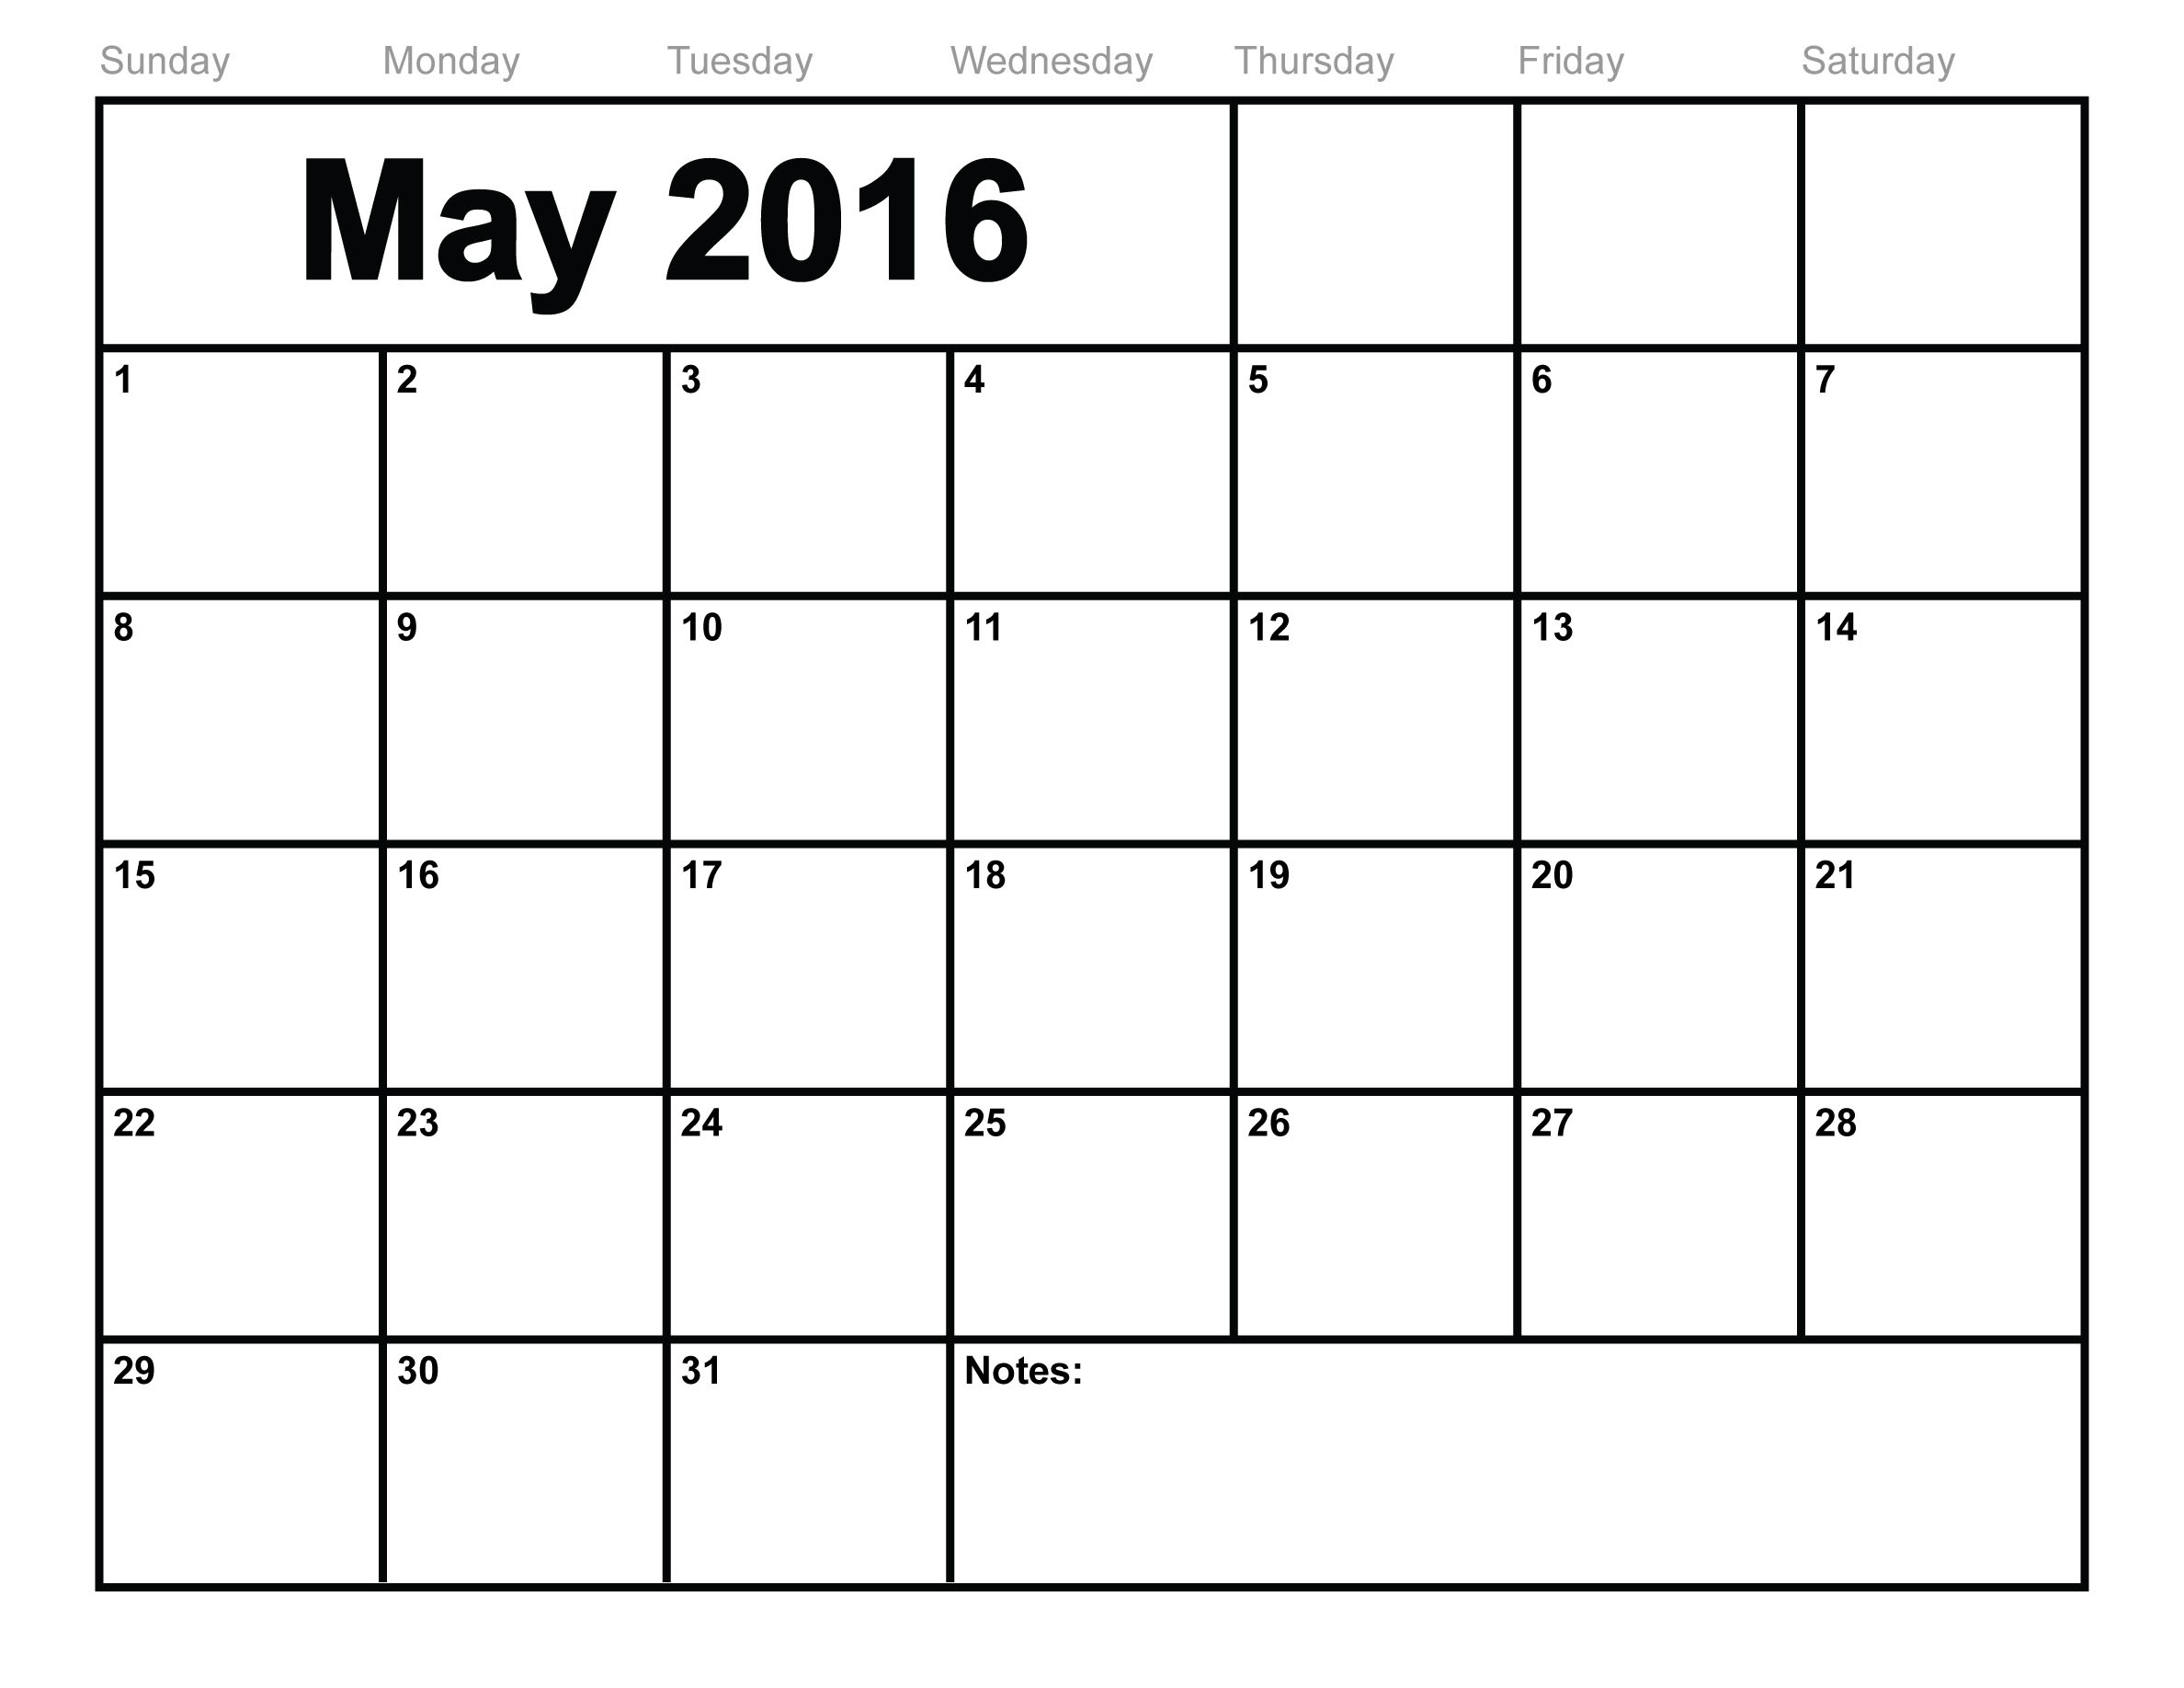 May 2016 Printable Calendar landscape, May 2016 Printable A4 Templates, May 2016 Calendar Portrait Printable, May 2016 Landscape Printable Calendar, May 2016 Portrait Editable Templates, May 2016 A4 Calendar Printable